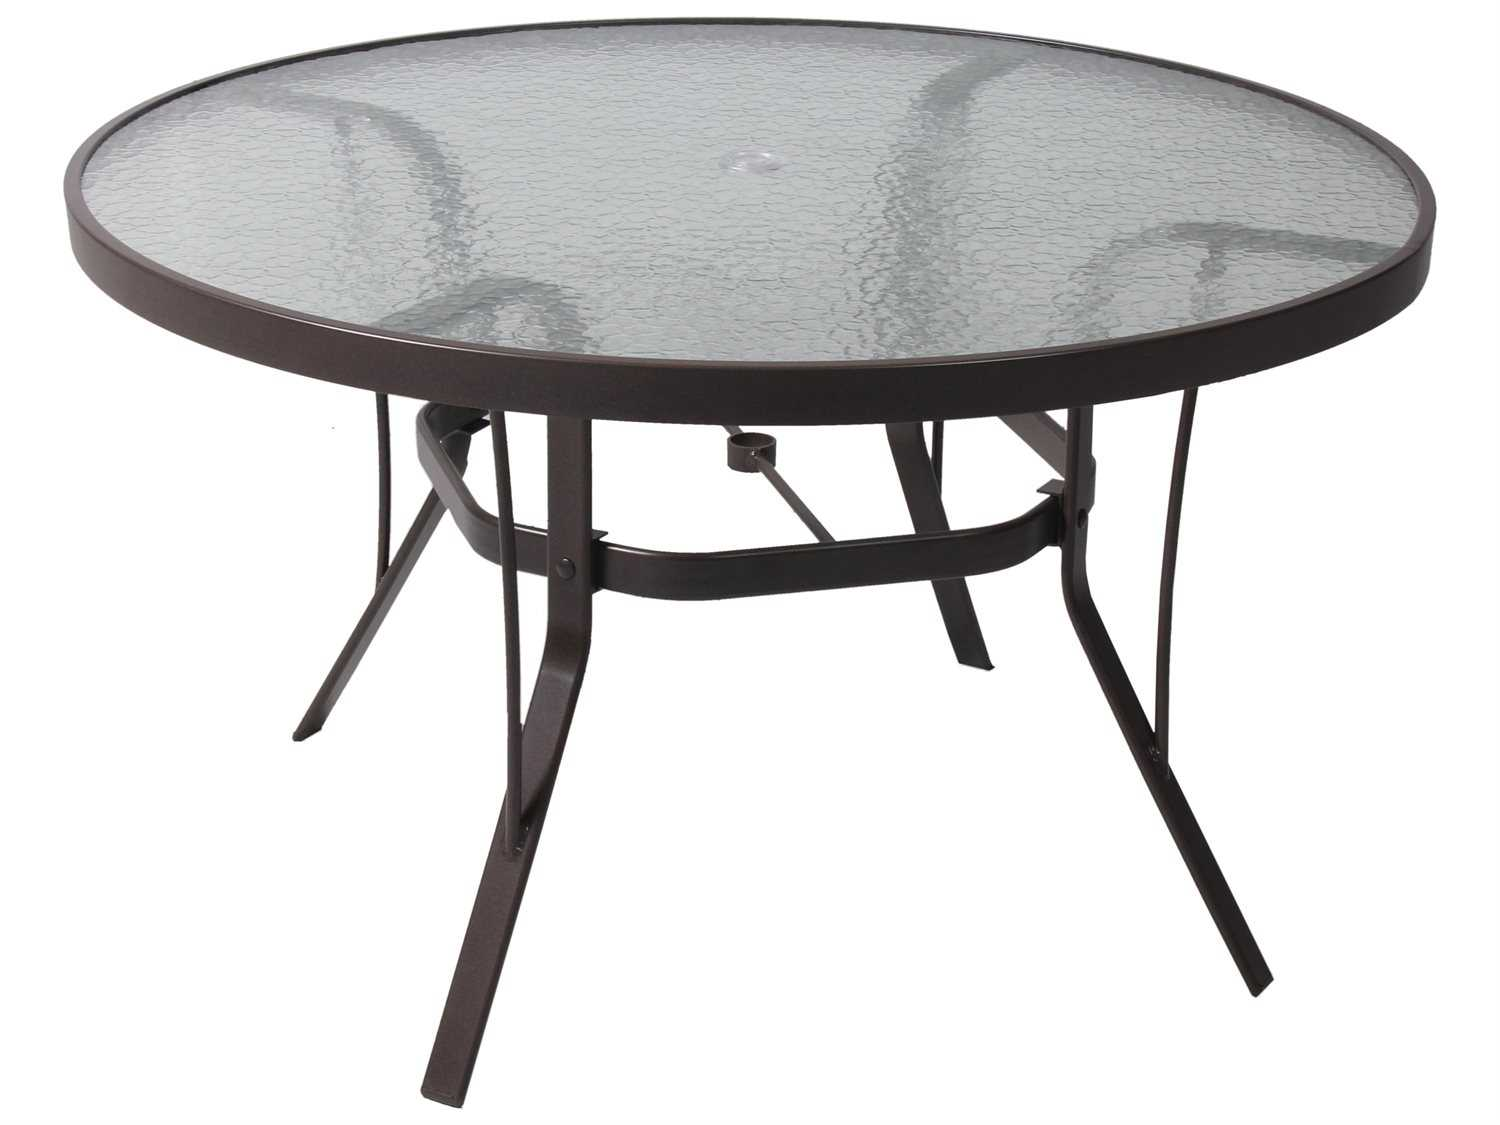 Round Glass Top Coffee Table Suncoast Cast Aluminum 42 Round Glass Top Coffee Table